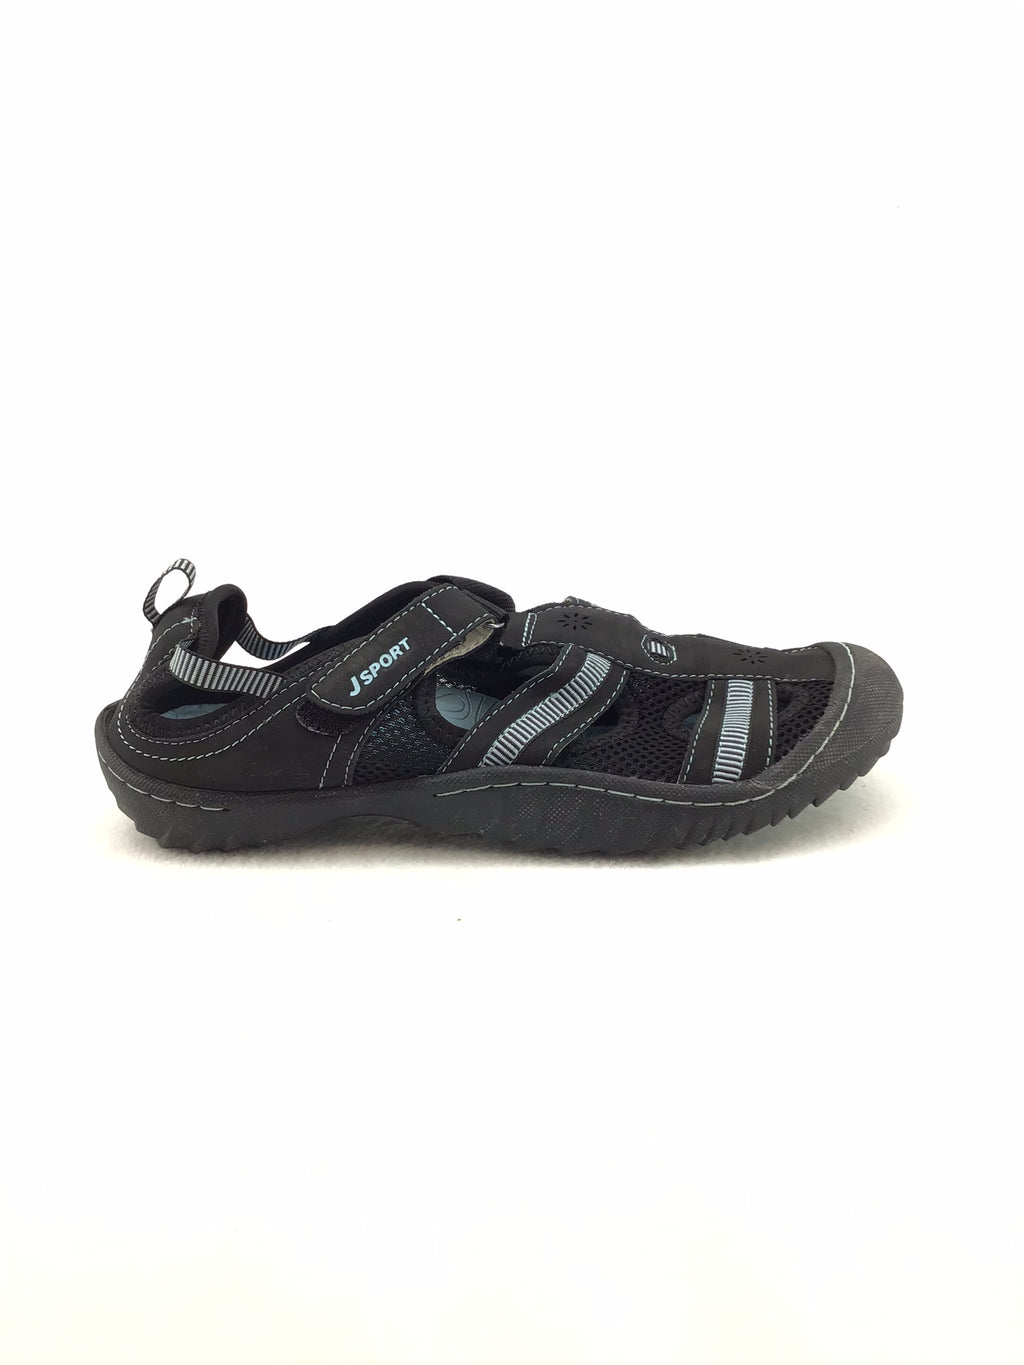 J Sport by Jambu Regatta Sandals Size 8.5M